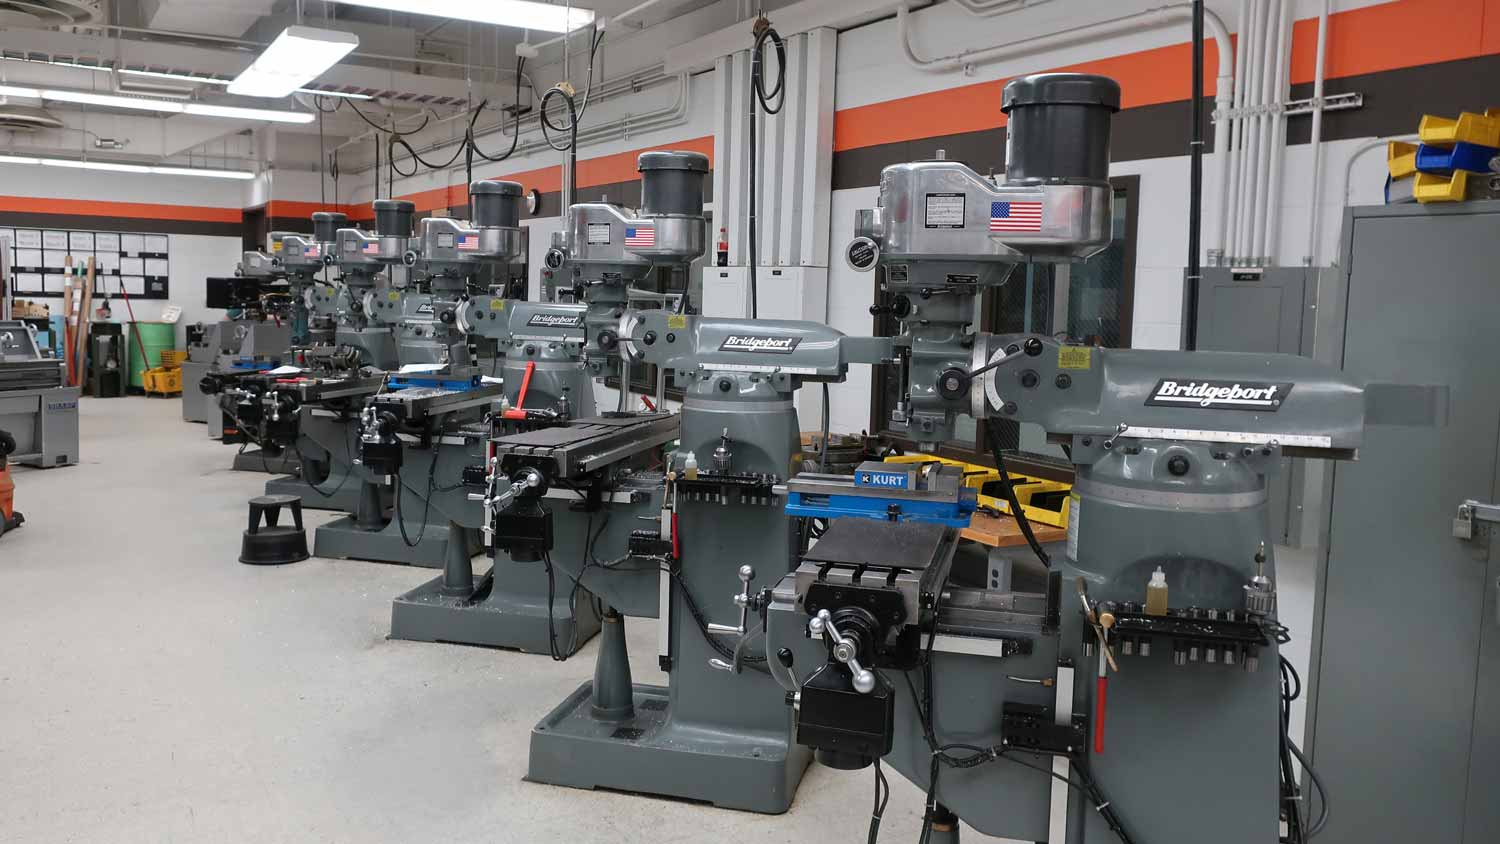 A row of machining tools in a workshop